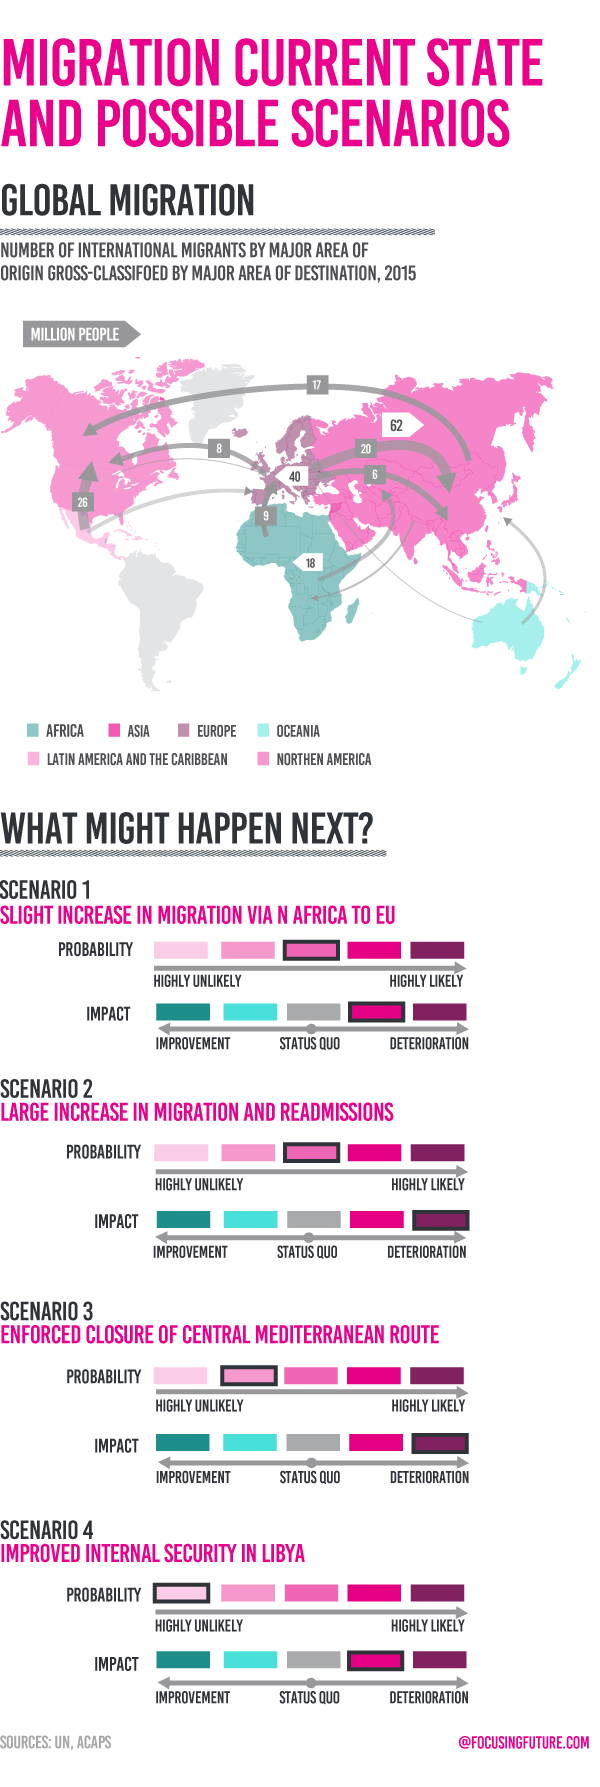 Migration current state and possible scenarios